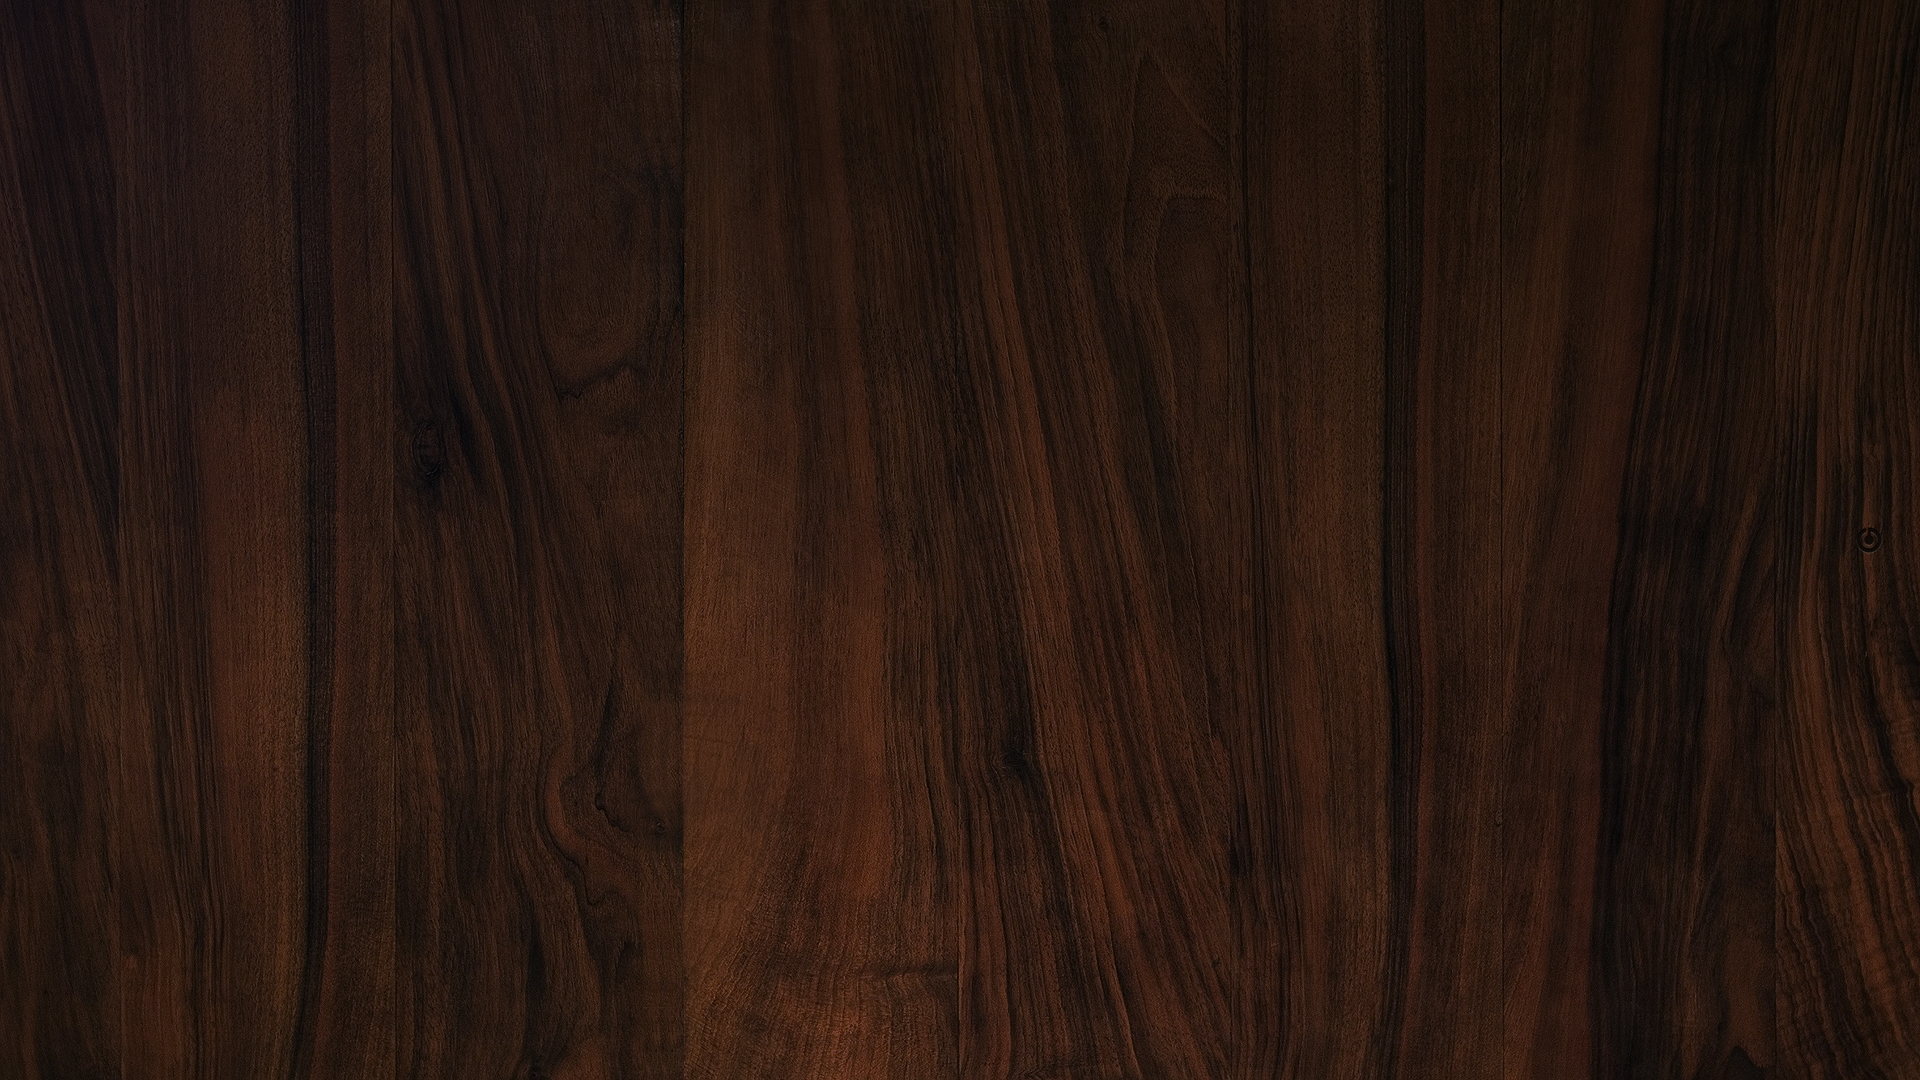 6838050-wood-wallpaper